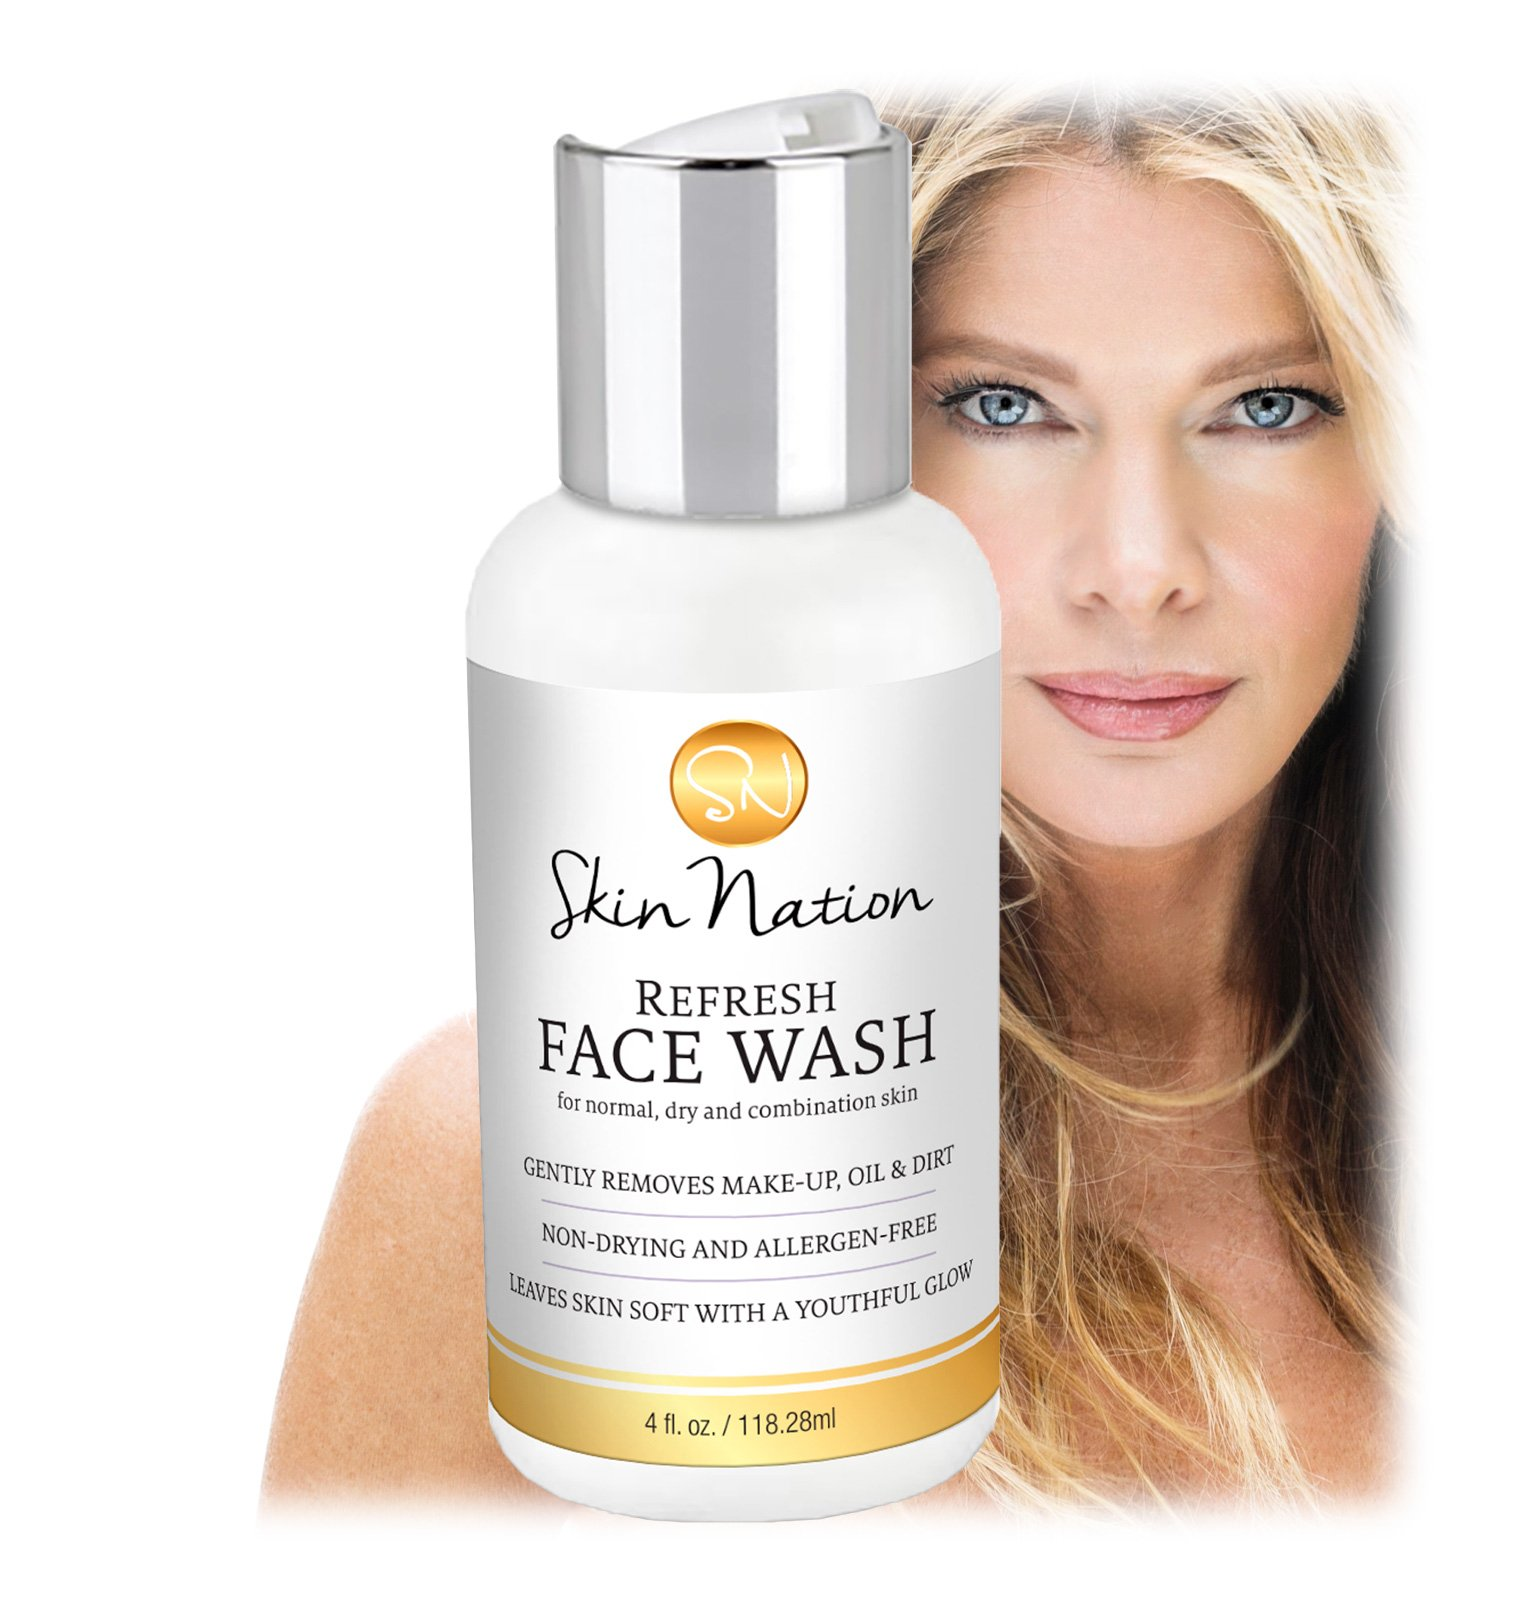 Face Wash - Facial Cleanser Organic & Natural Ingredients - Anti Aging, Foaming, Deep Cleans & Moisturizes with Aloe Vera, Vitamin E, Jojoba Oil, Coconut Milk & Honey. Skin Nation by Michelle Stafford